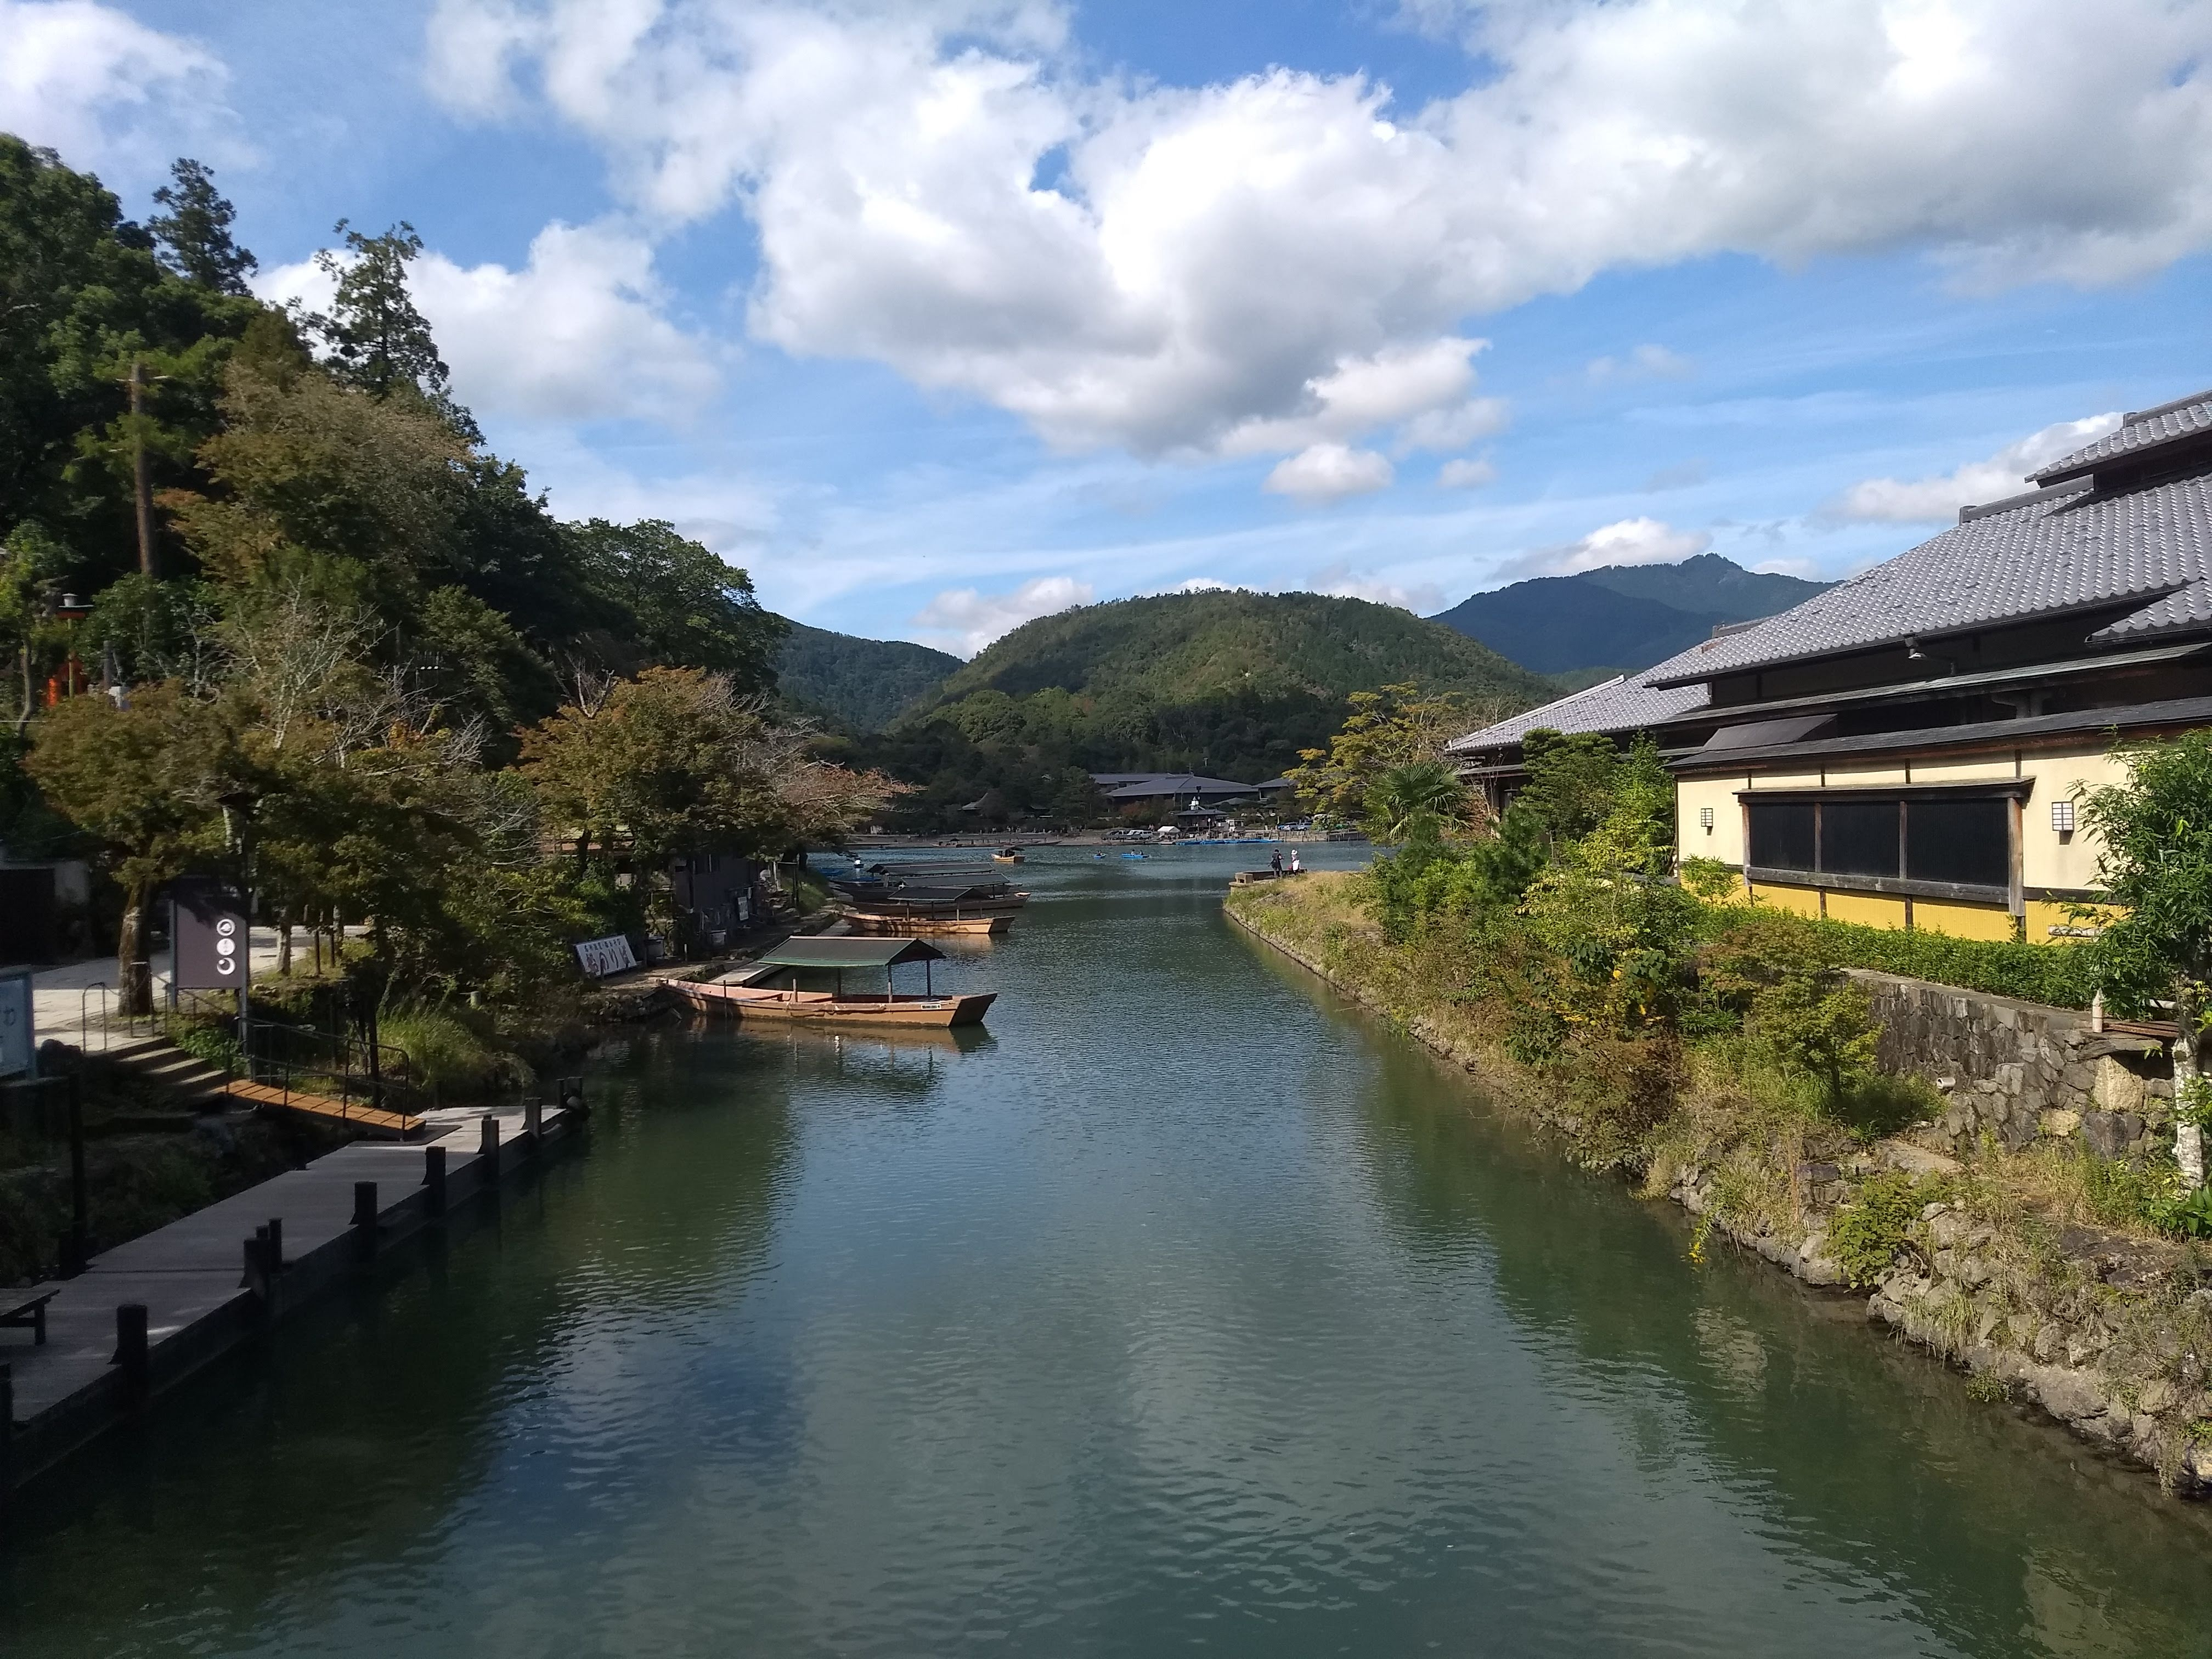 Crossing the small bridge in Arashiyama - 10-23-2019